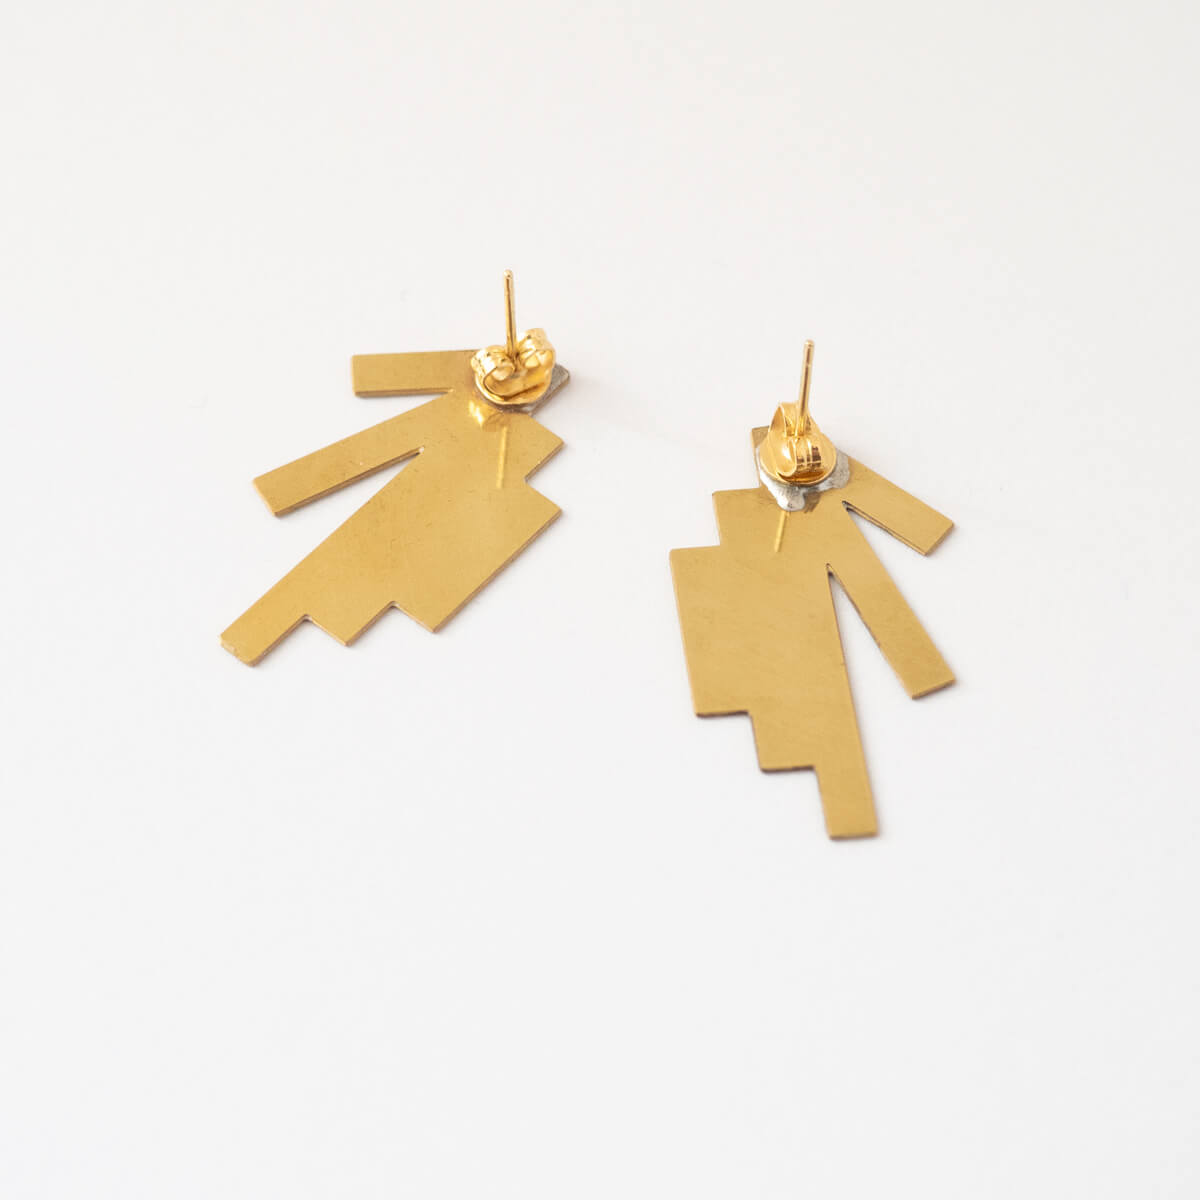 Pila Earrings | Statement Earrings | Curious Makers